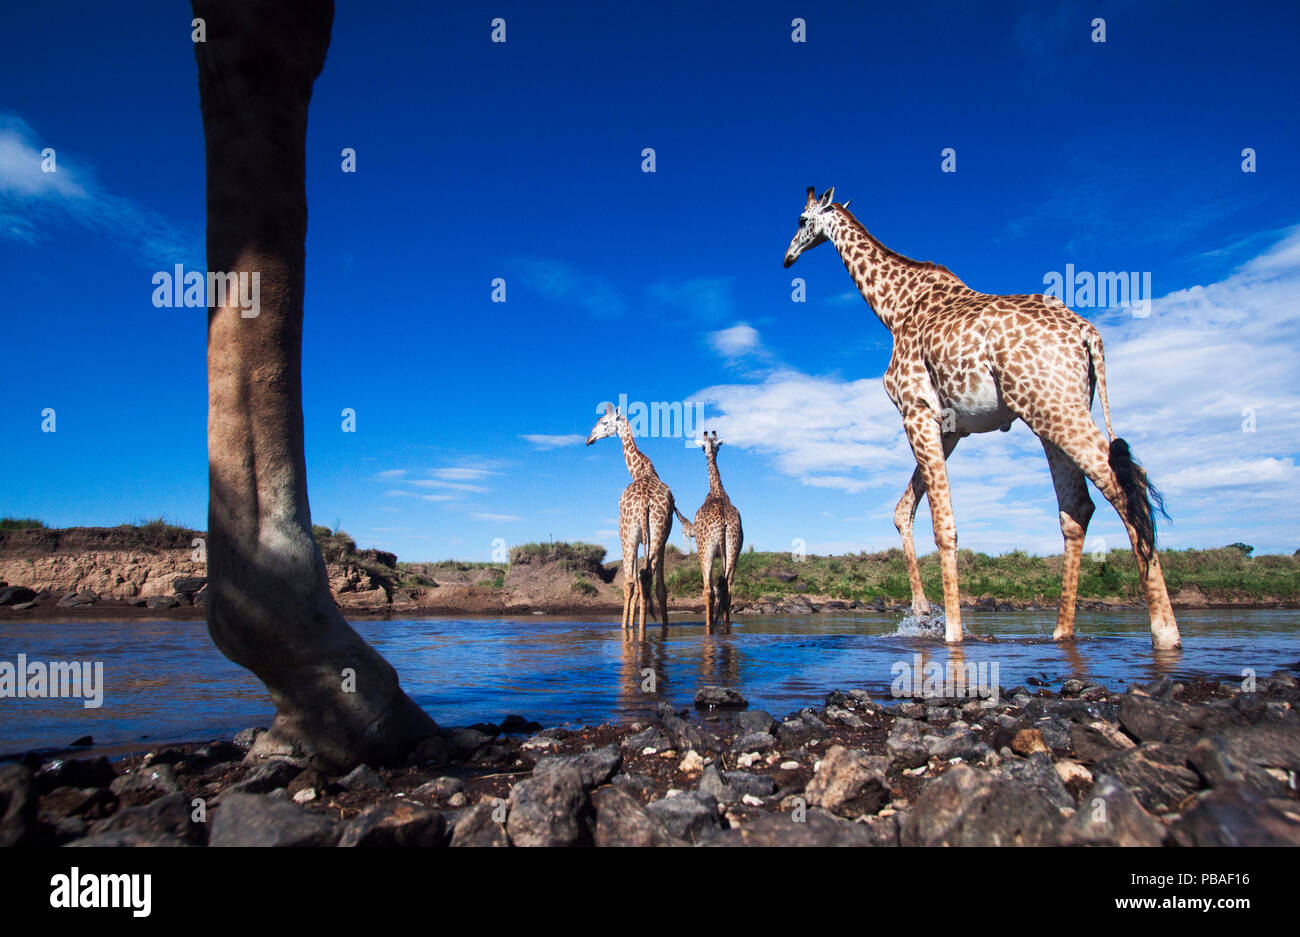 Maasai giraffe (Giraffa camelopardalis tippelskirchi) herd crossing the Mara River, Maasai Mara National Reserve, Kenya. Taken with remote wide angle camera. - Stock Image